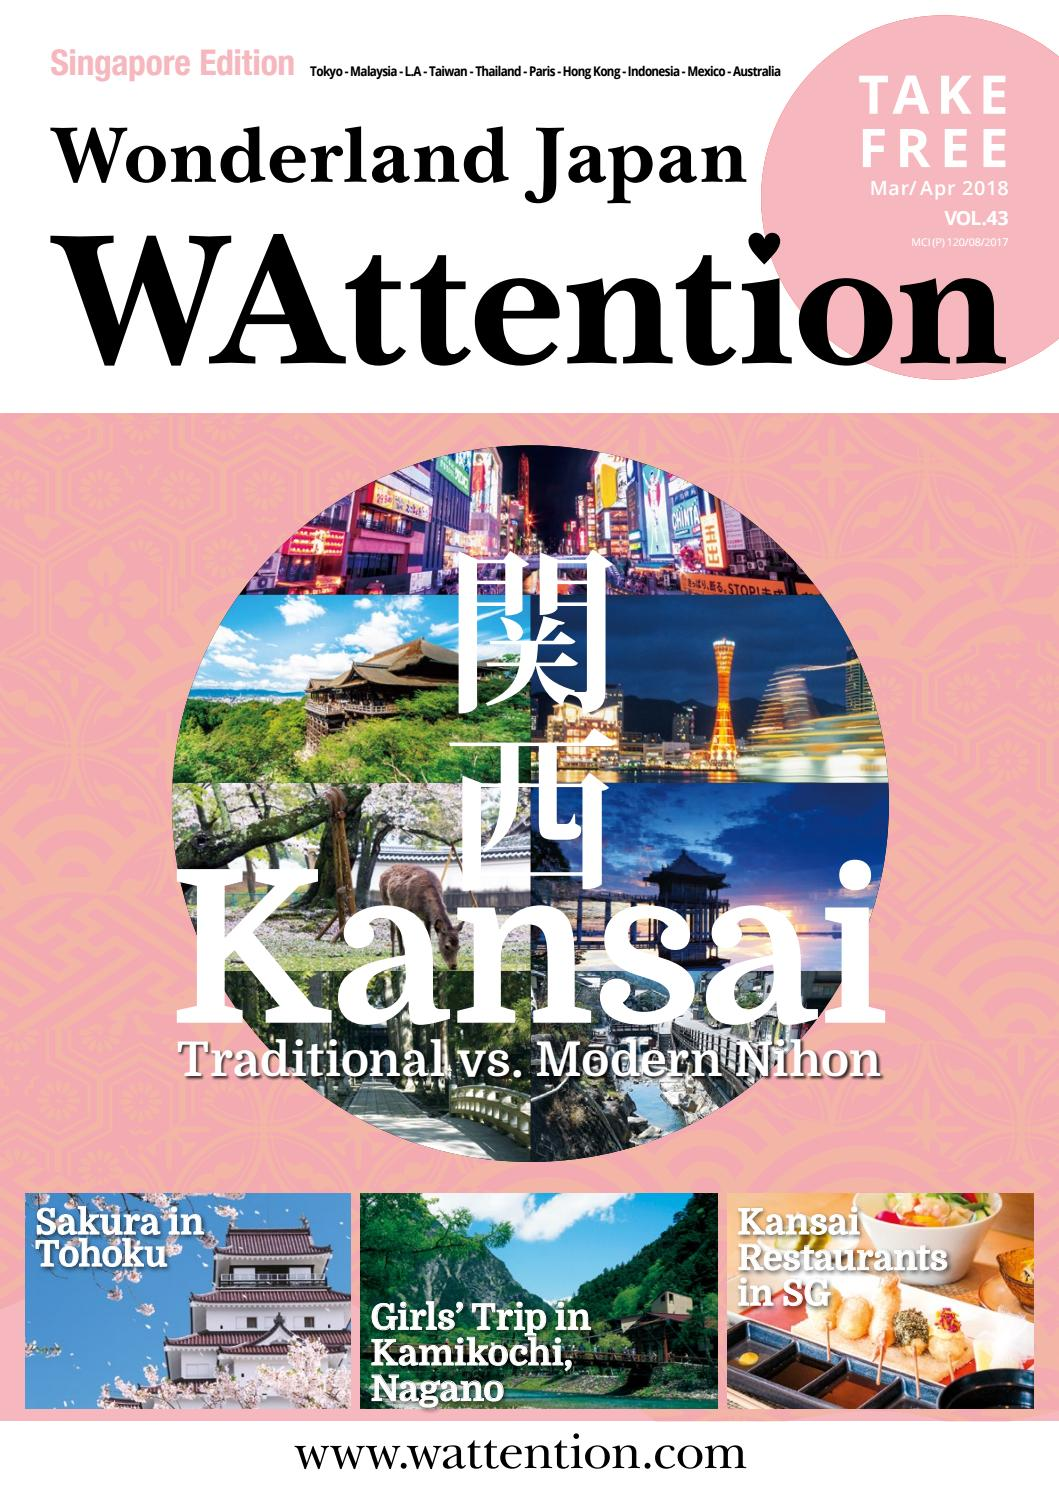 WAttention Singapore vol 43 by WAttention - issuu